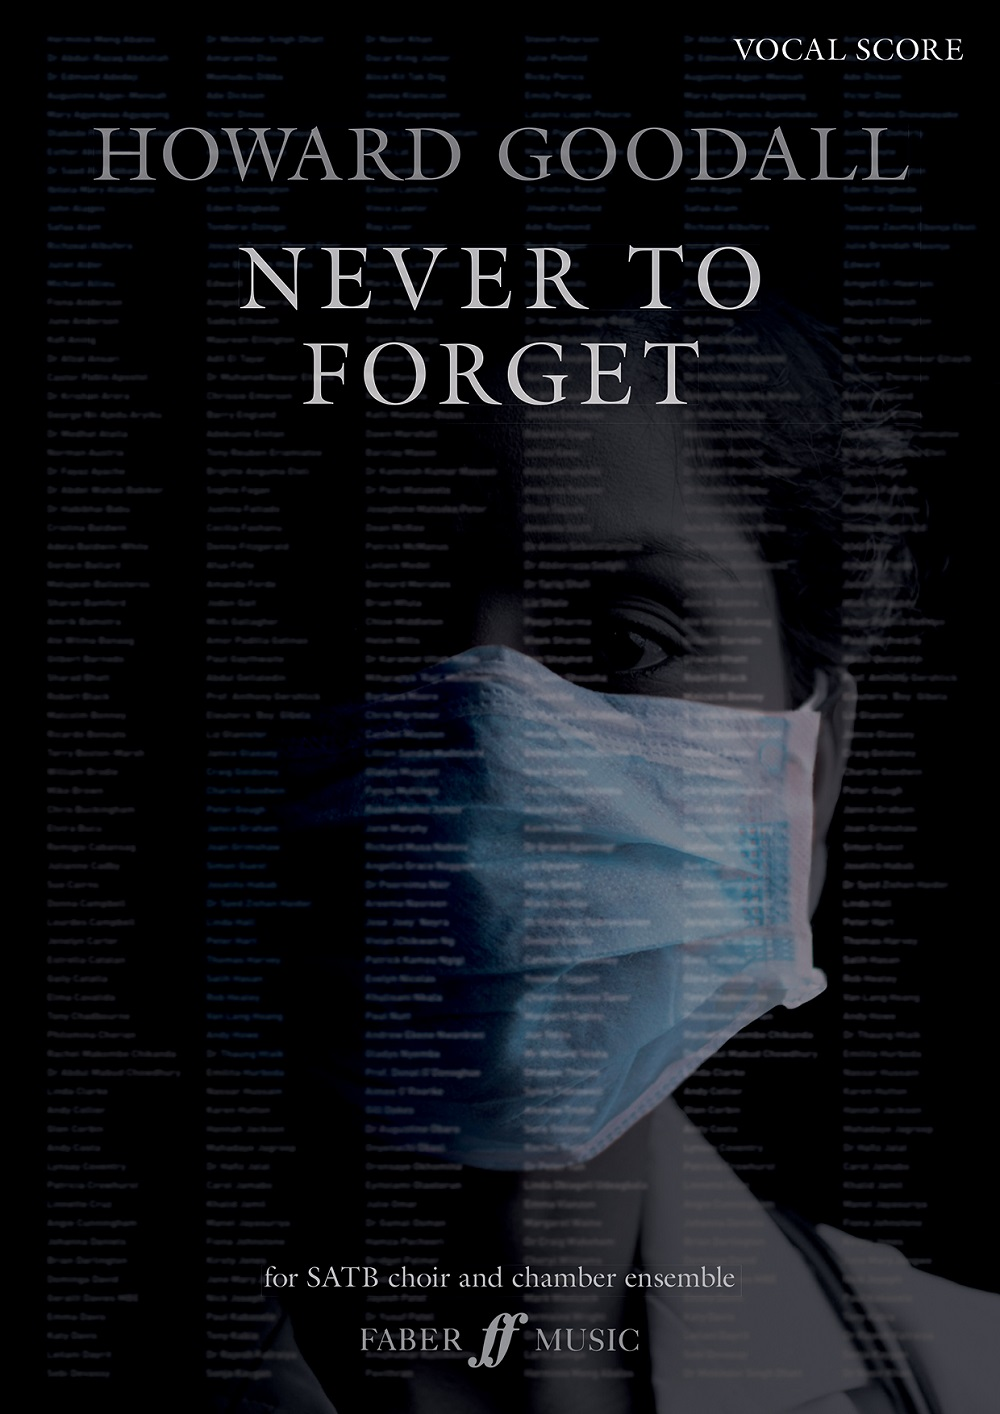 Howard Goodall: Never To Forget: Mixed Choir and Piano/Organ: Vocal Score